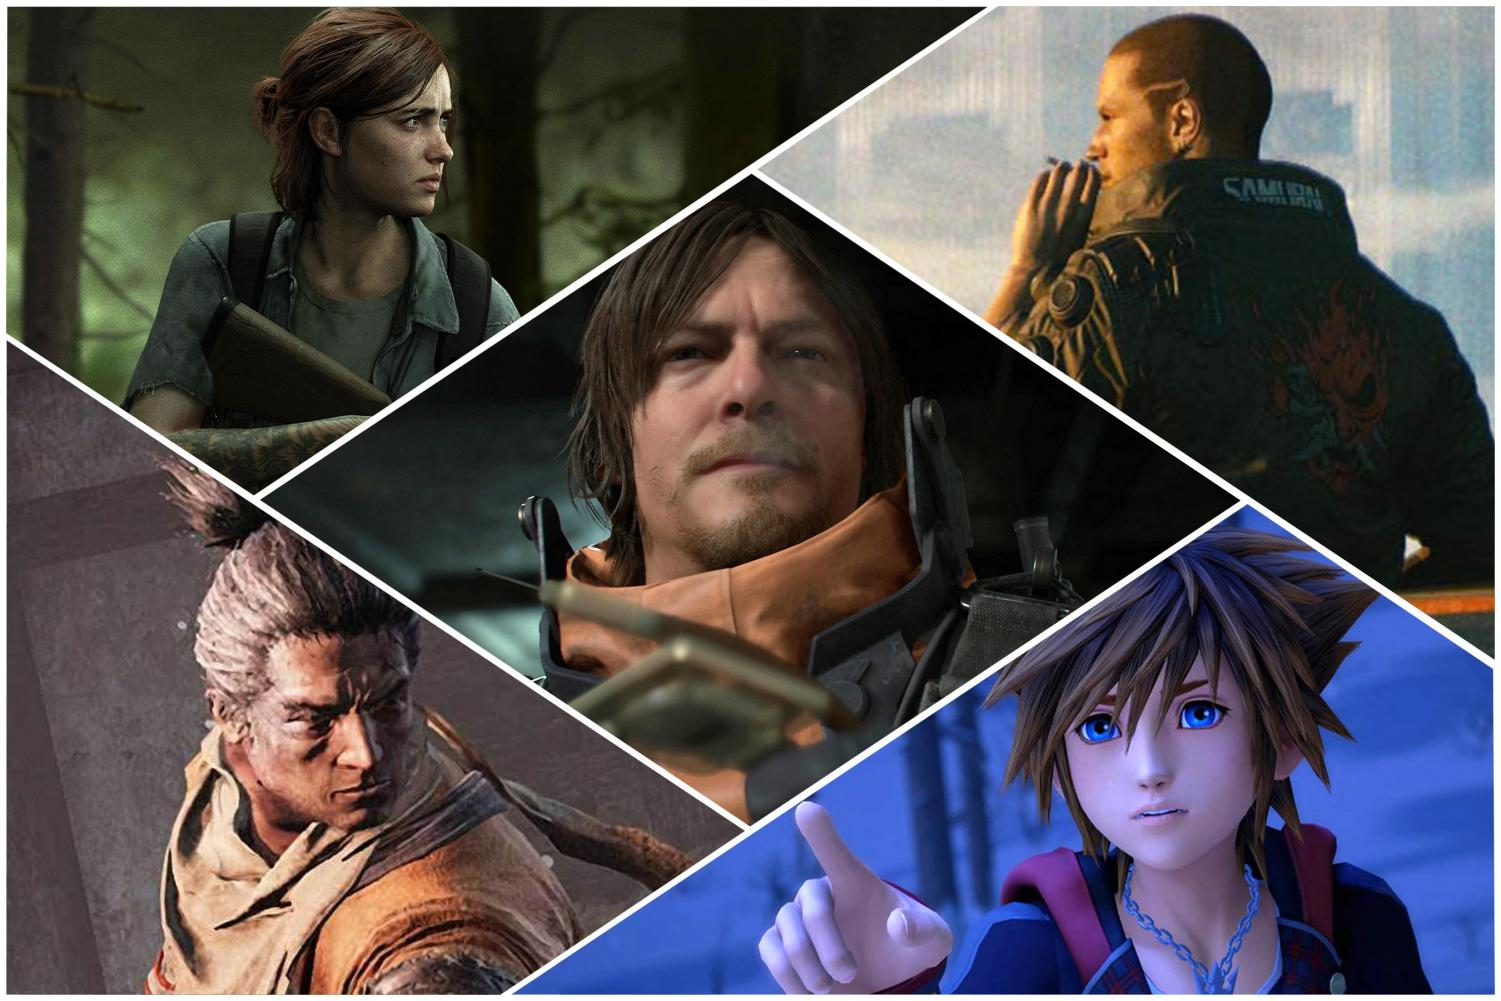 Some of the most anticipated games of 2019.